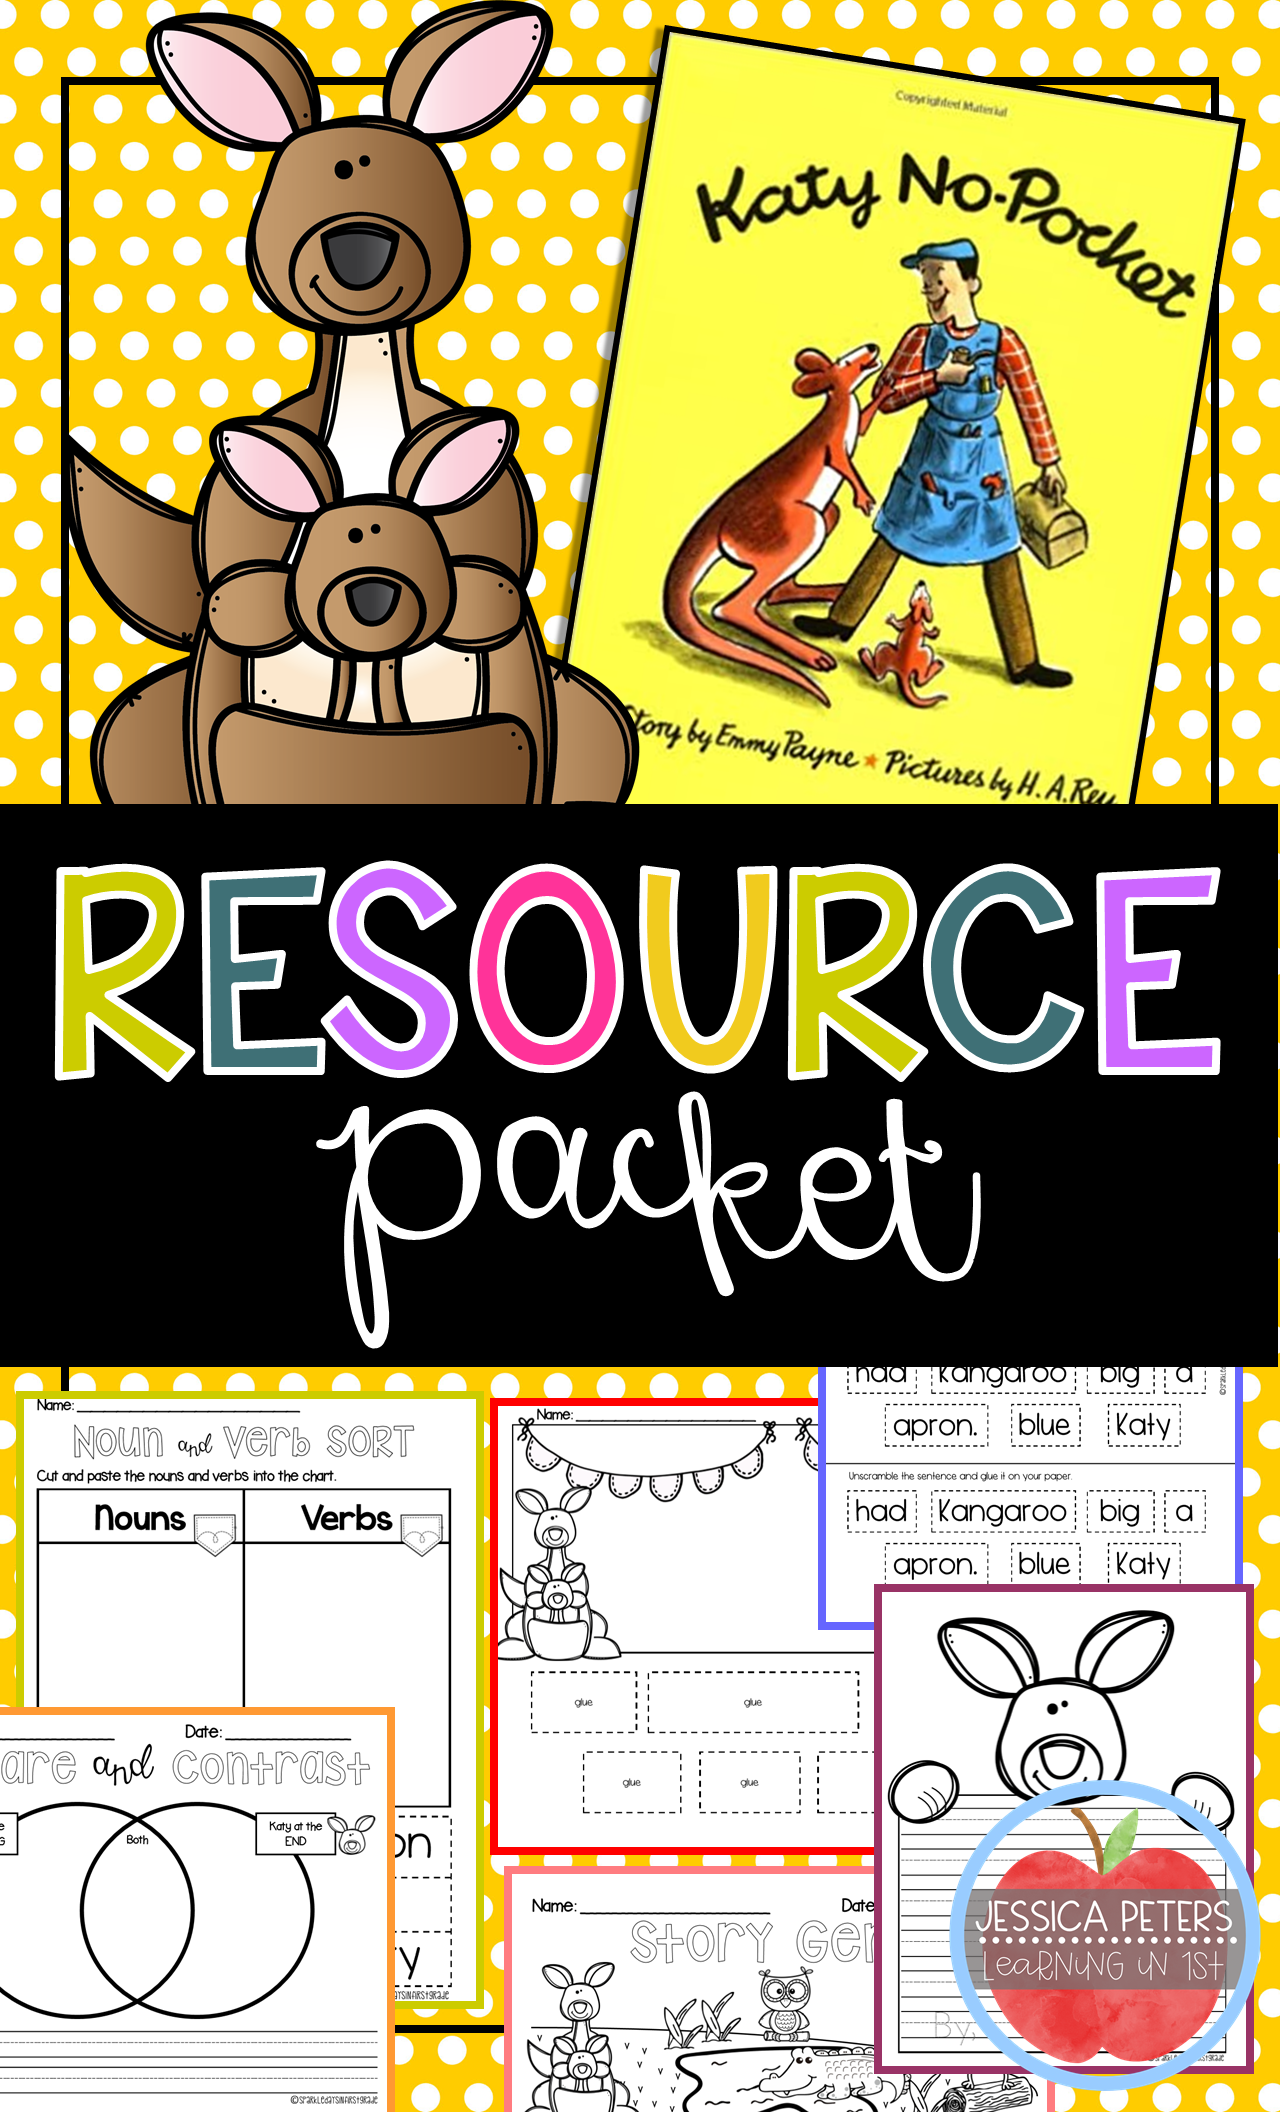 Katy No Pocket Resource Packet Pre K 1st Grade 2nd Grade Authors Purpose Activities Reading Comprehension [ 2112 x 1280 Pixel ]